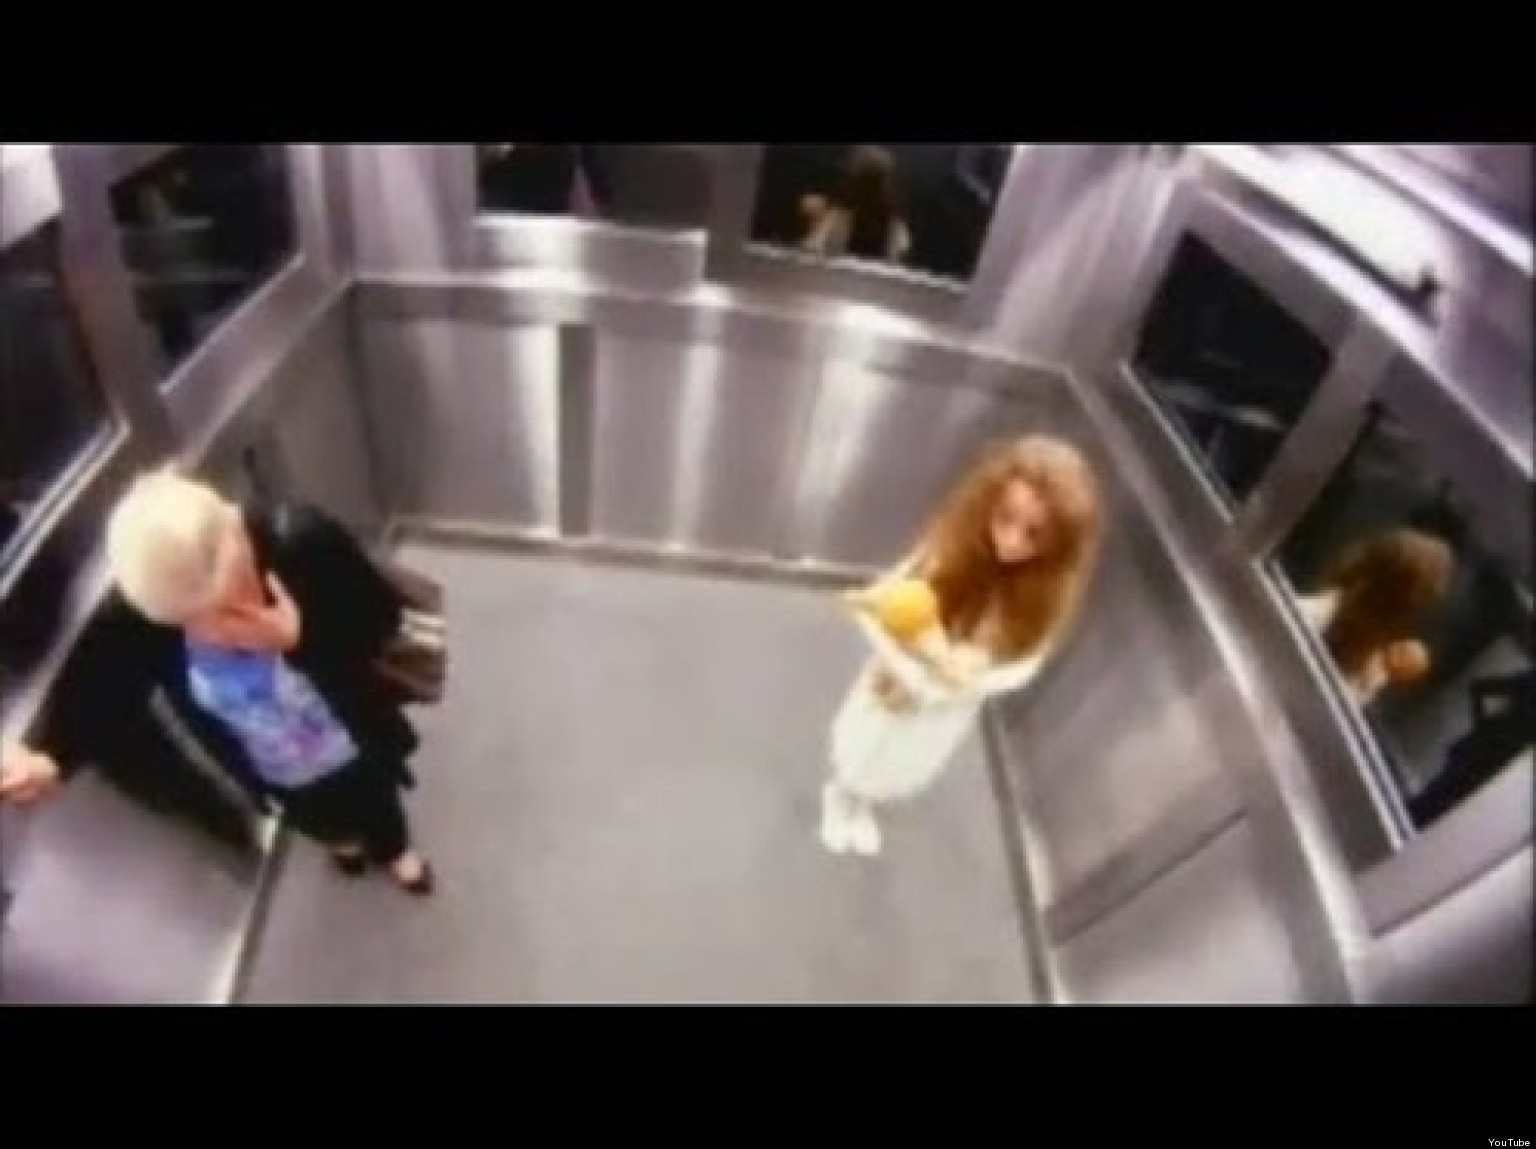 Funny Pranks: Ghost Elevator Prank: Funny Or Terrifying? (VIDEO